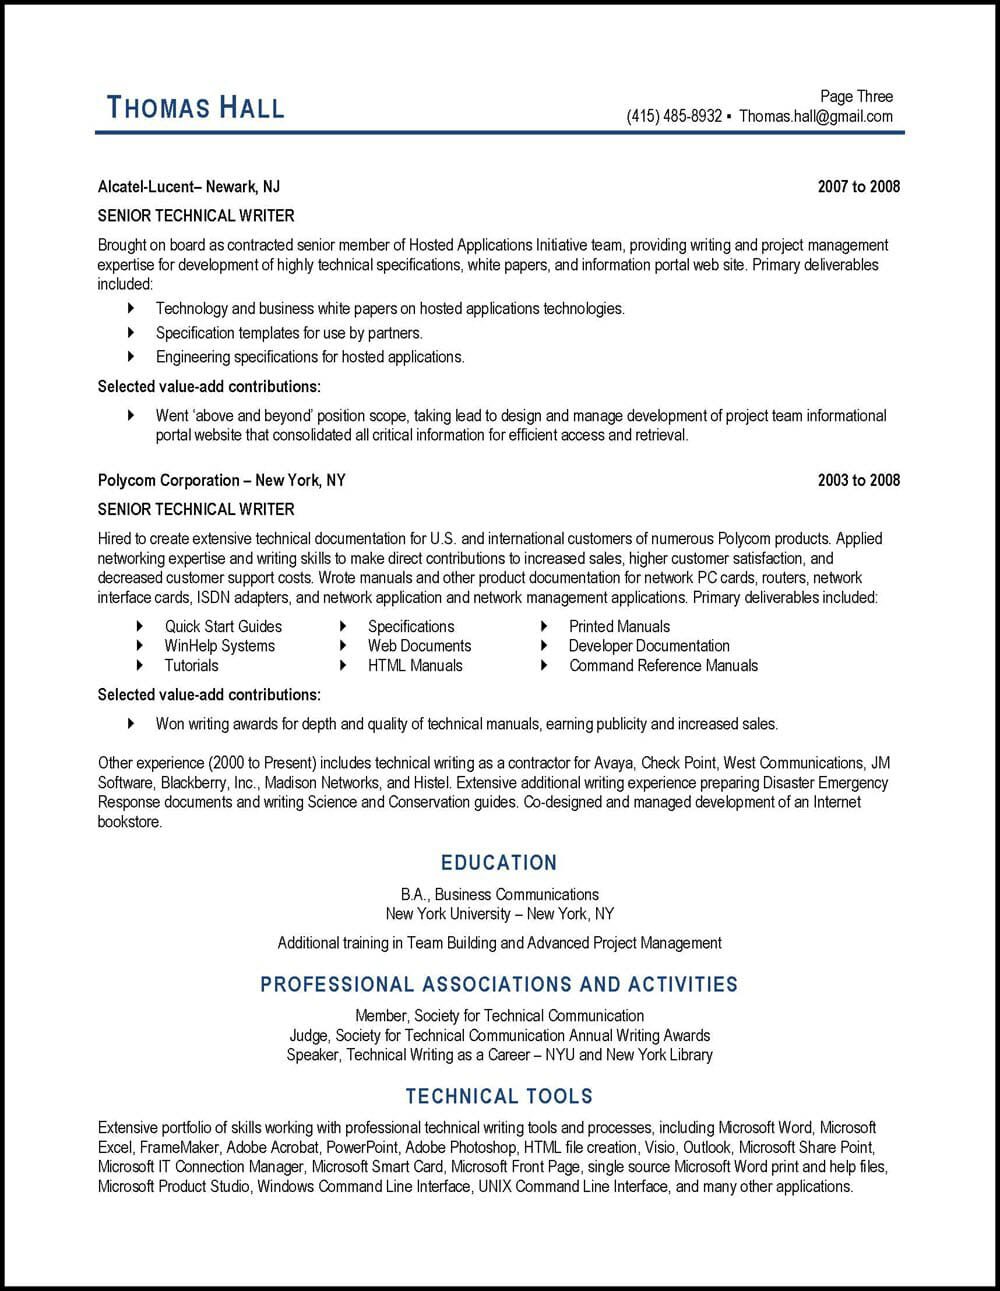 technical writer resume example distinctive career services samples merchandising manager Resume Technical Writer Resume Samples